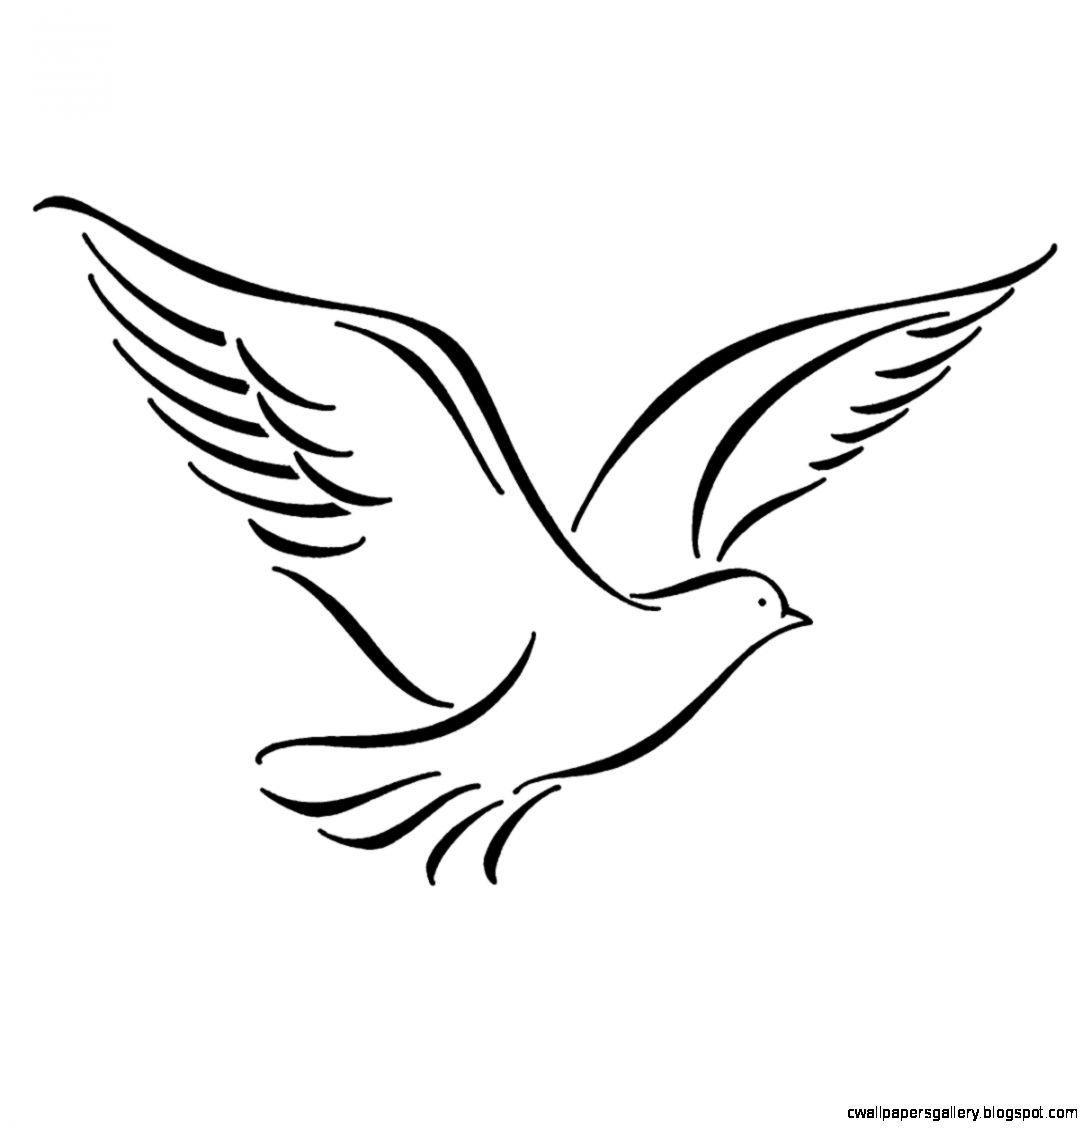 1090x1128 Drawing Of Birds Flying Flying Bird Drawing Wallpapers Gallery